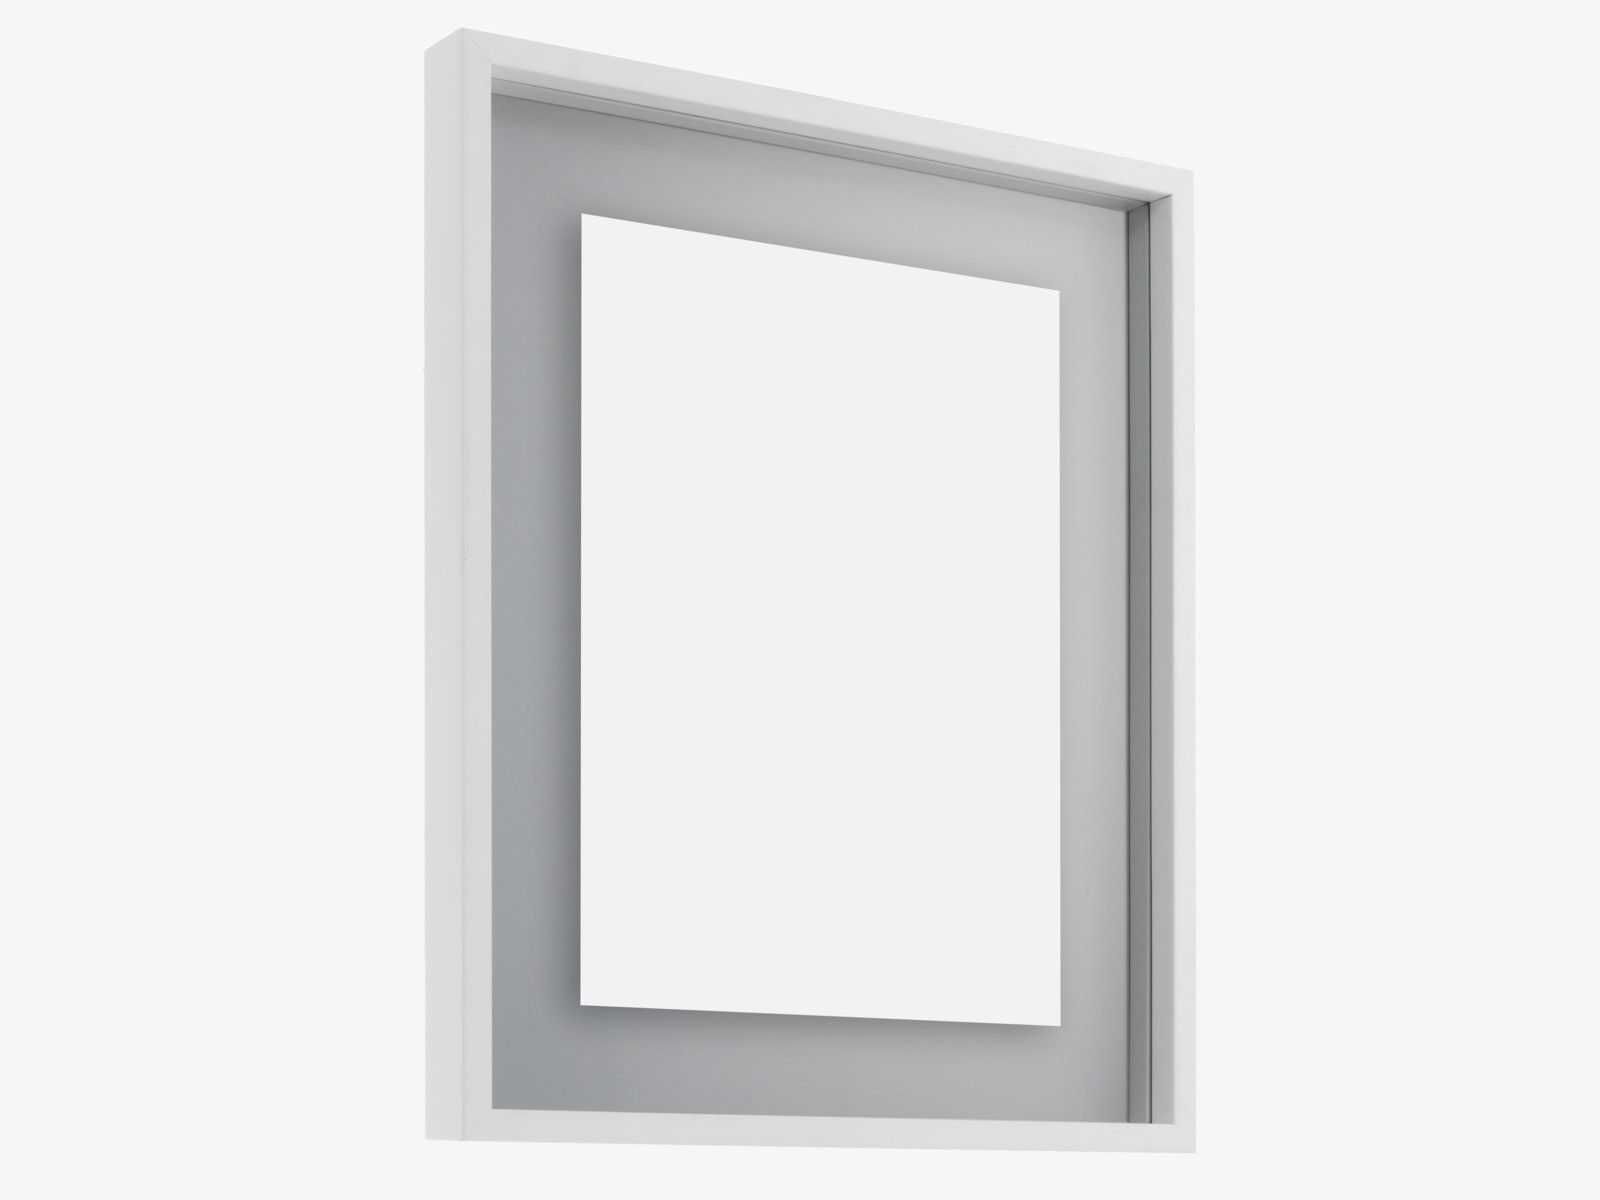 Monro 40 X 50cm 16 X 20 Reversible Floating Picture Frame Floating Picture Frames Picture Frames Wall Frames